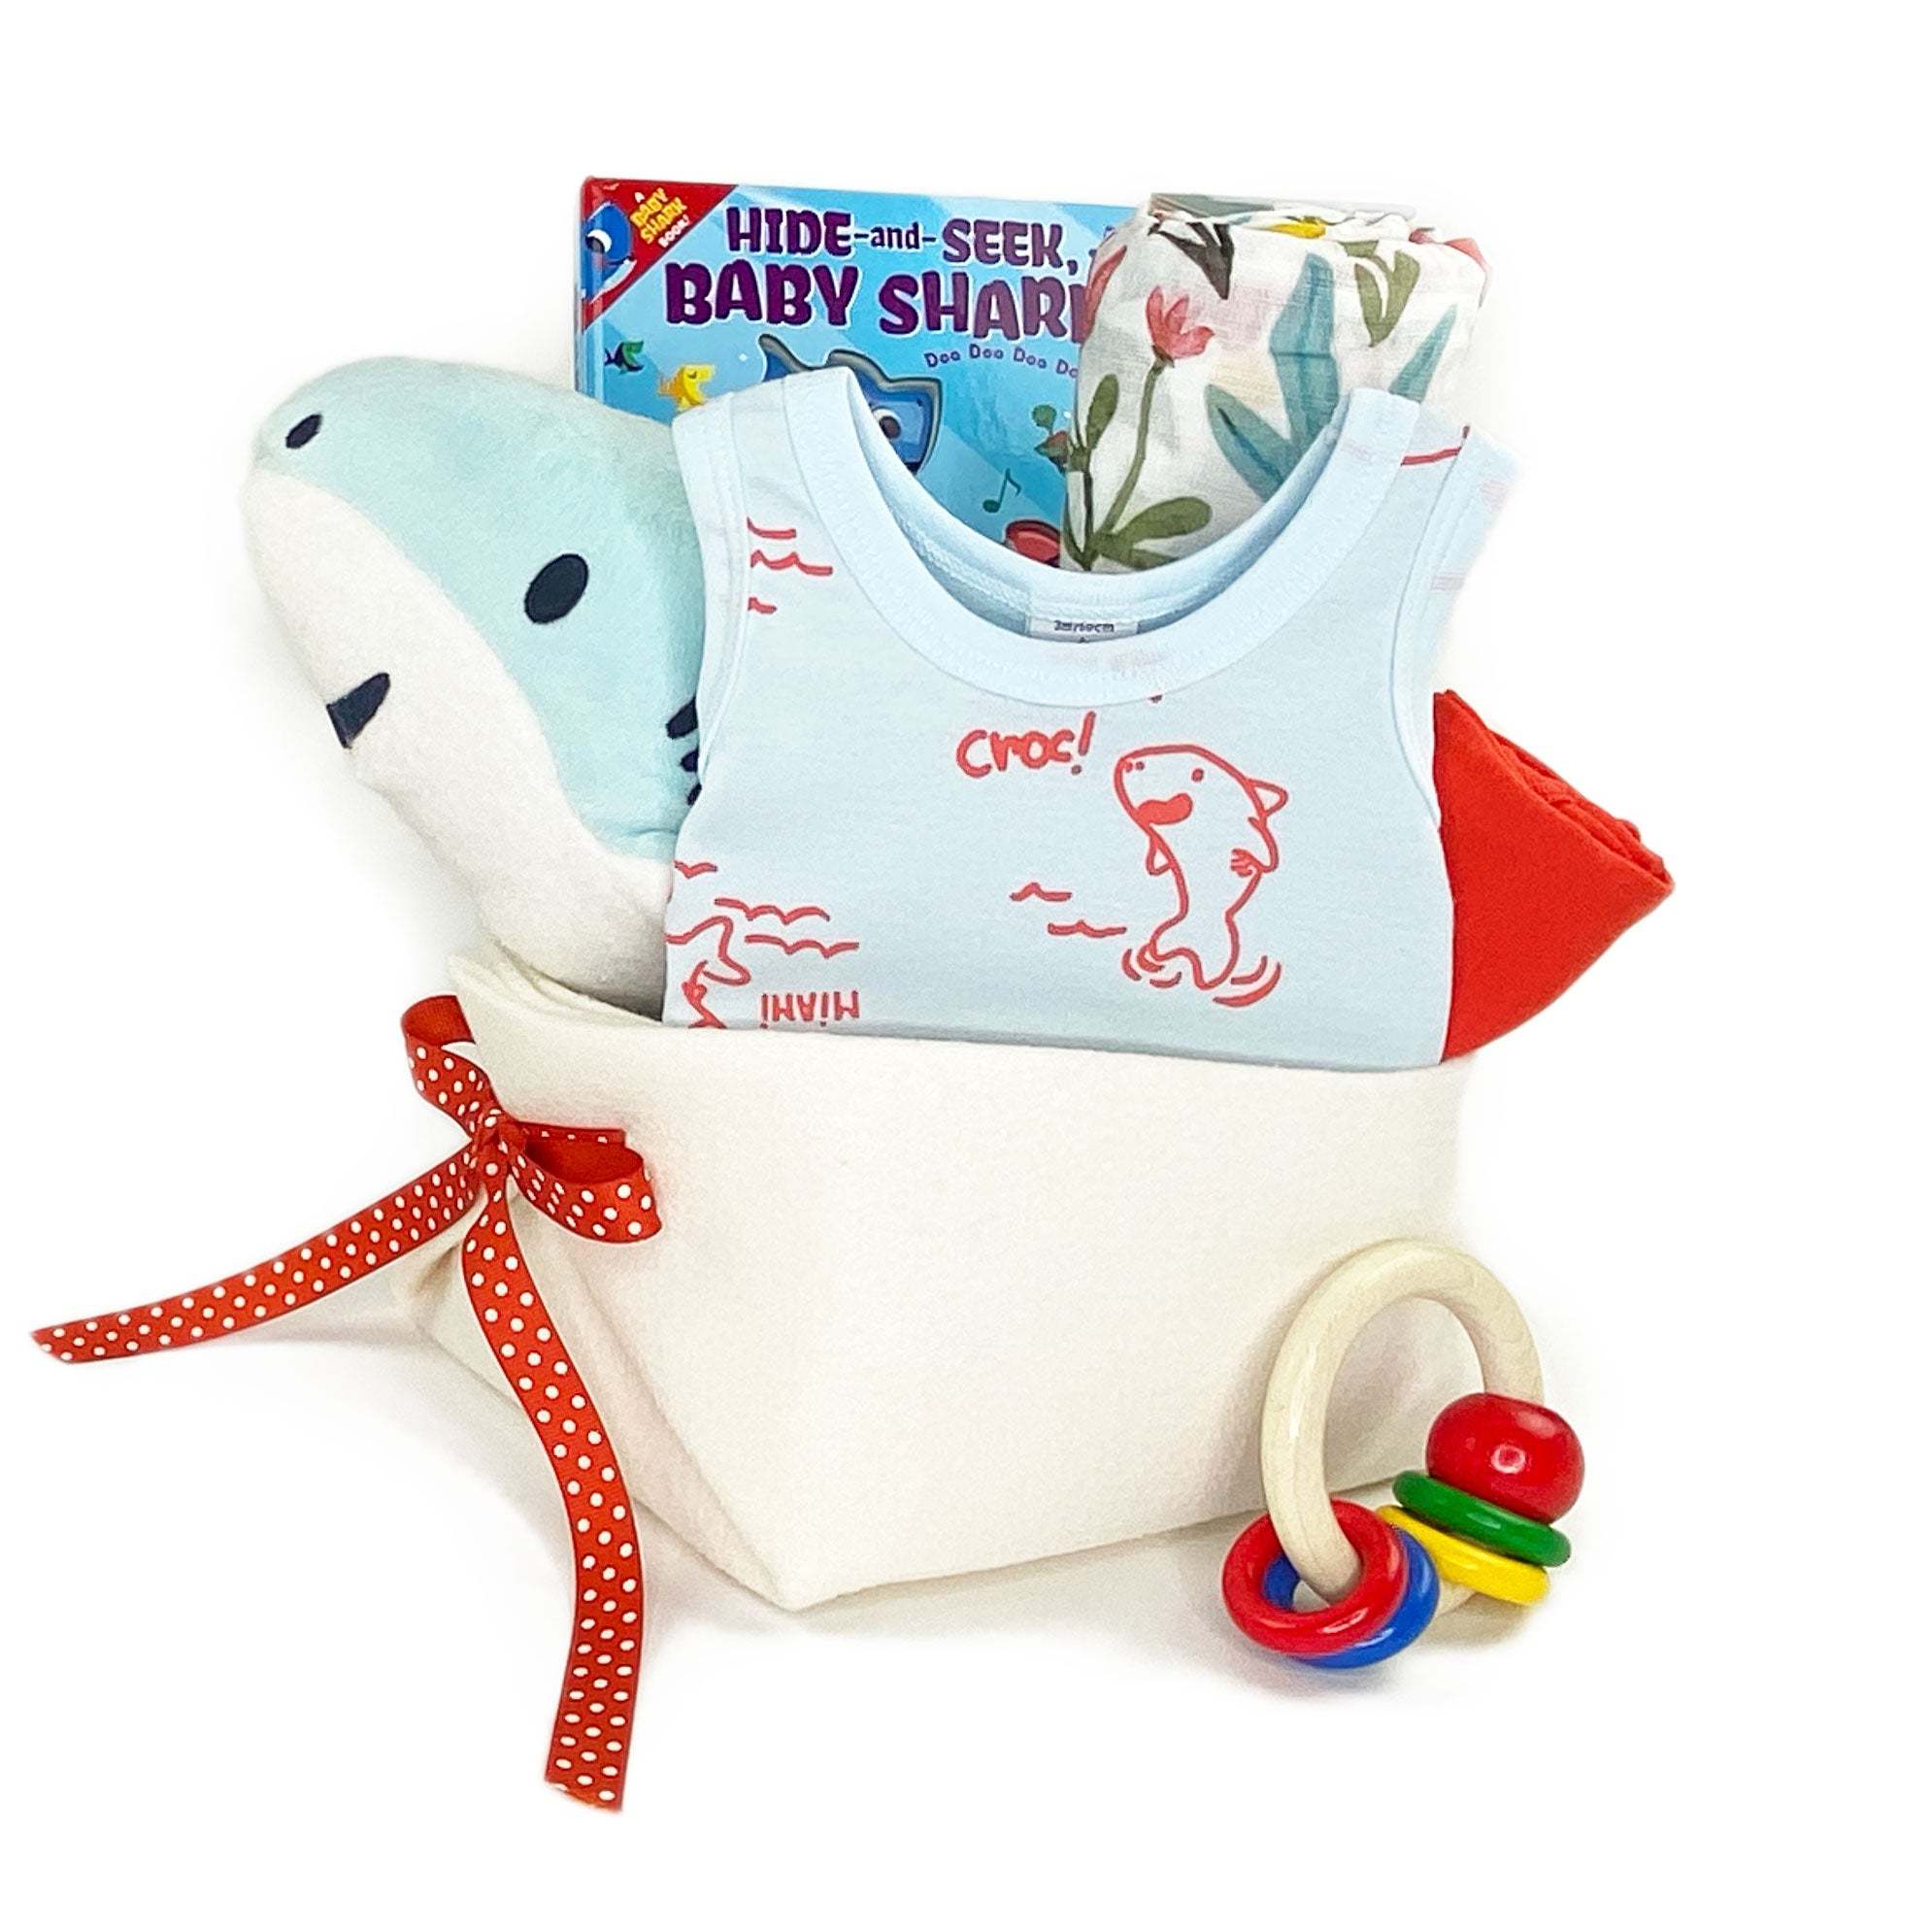 Baby Gift Basket featuring Petit Bateau at Bonjour Baby Baskets